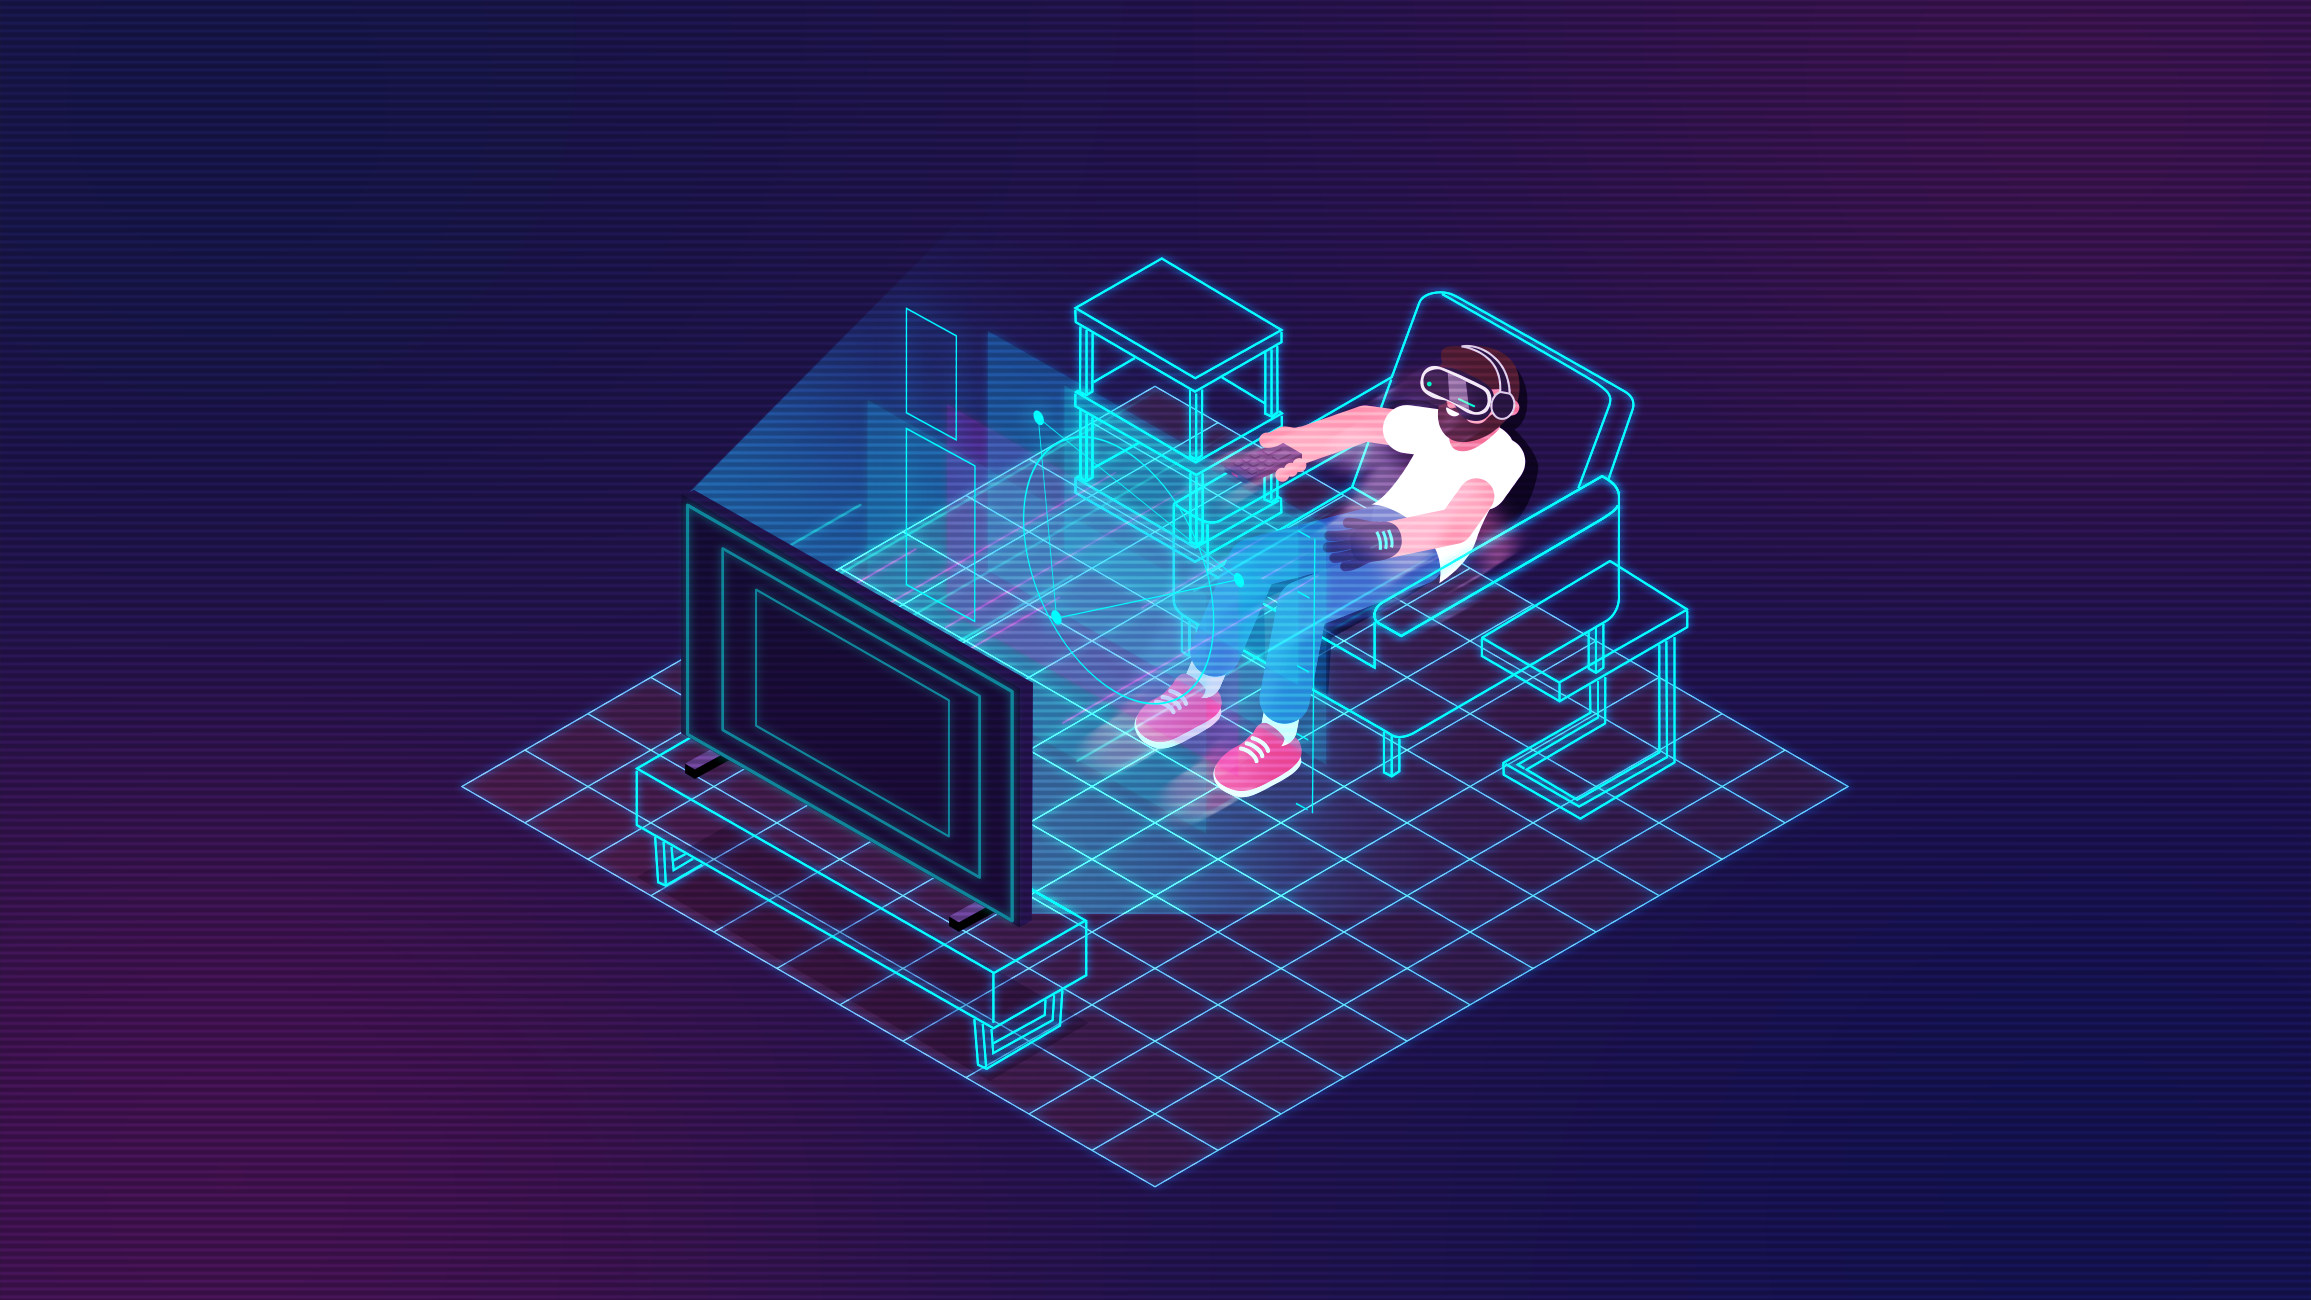 03_00033.png